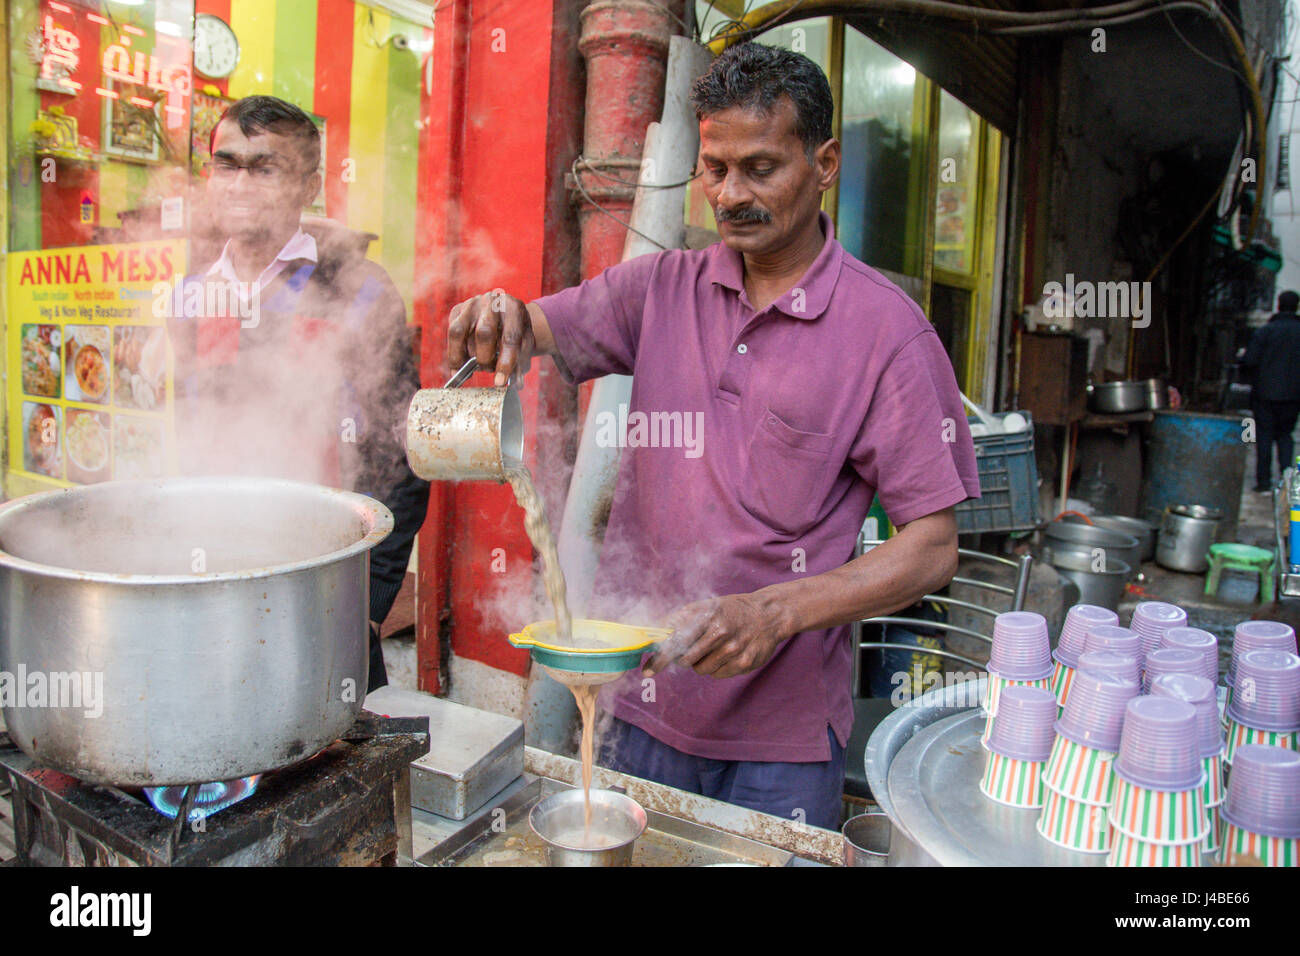 Man pouring a hot beverage through a sifter before serving at the Khari Baoli market in New Delhi, India. - Stock Image